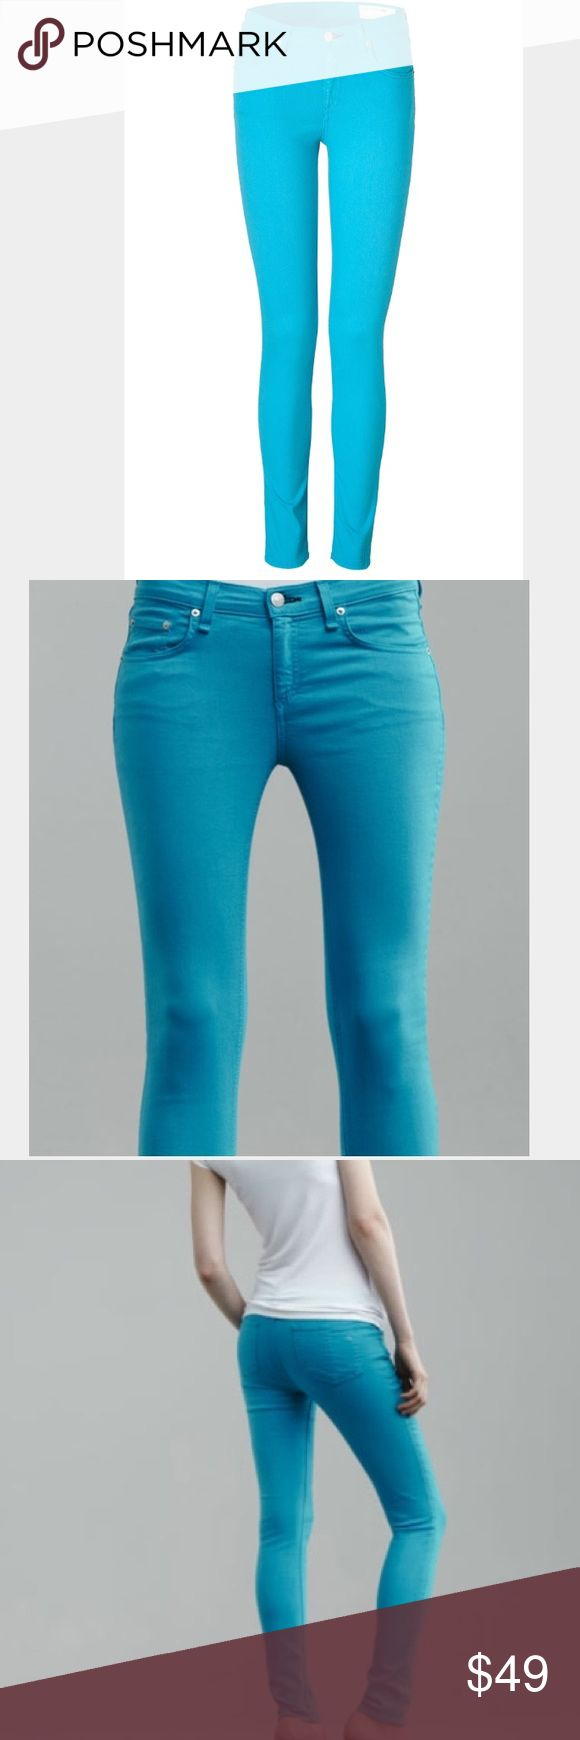 Rag & Bone bright blue skinny jeans Perfect condition! Great color! rag & bone Jeans Skinny